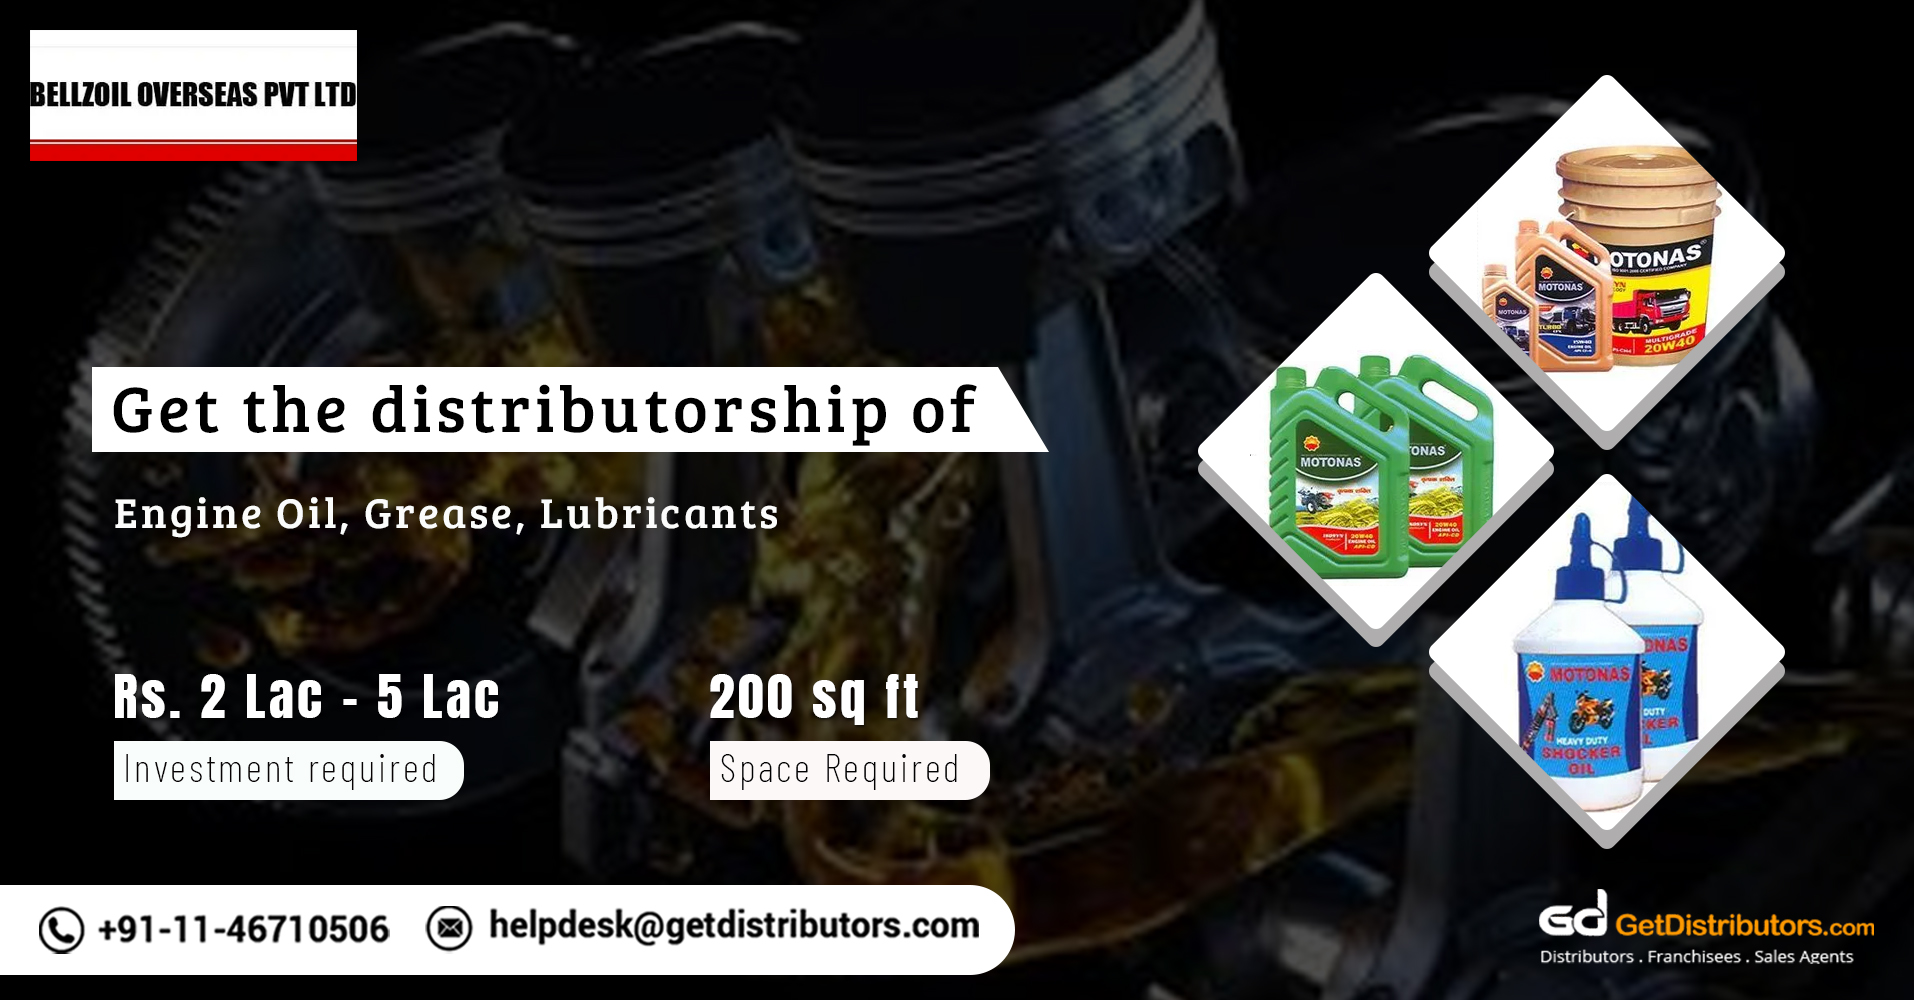 Superior Grade Engine Oils, Lubricants & Greases